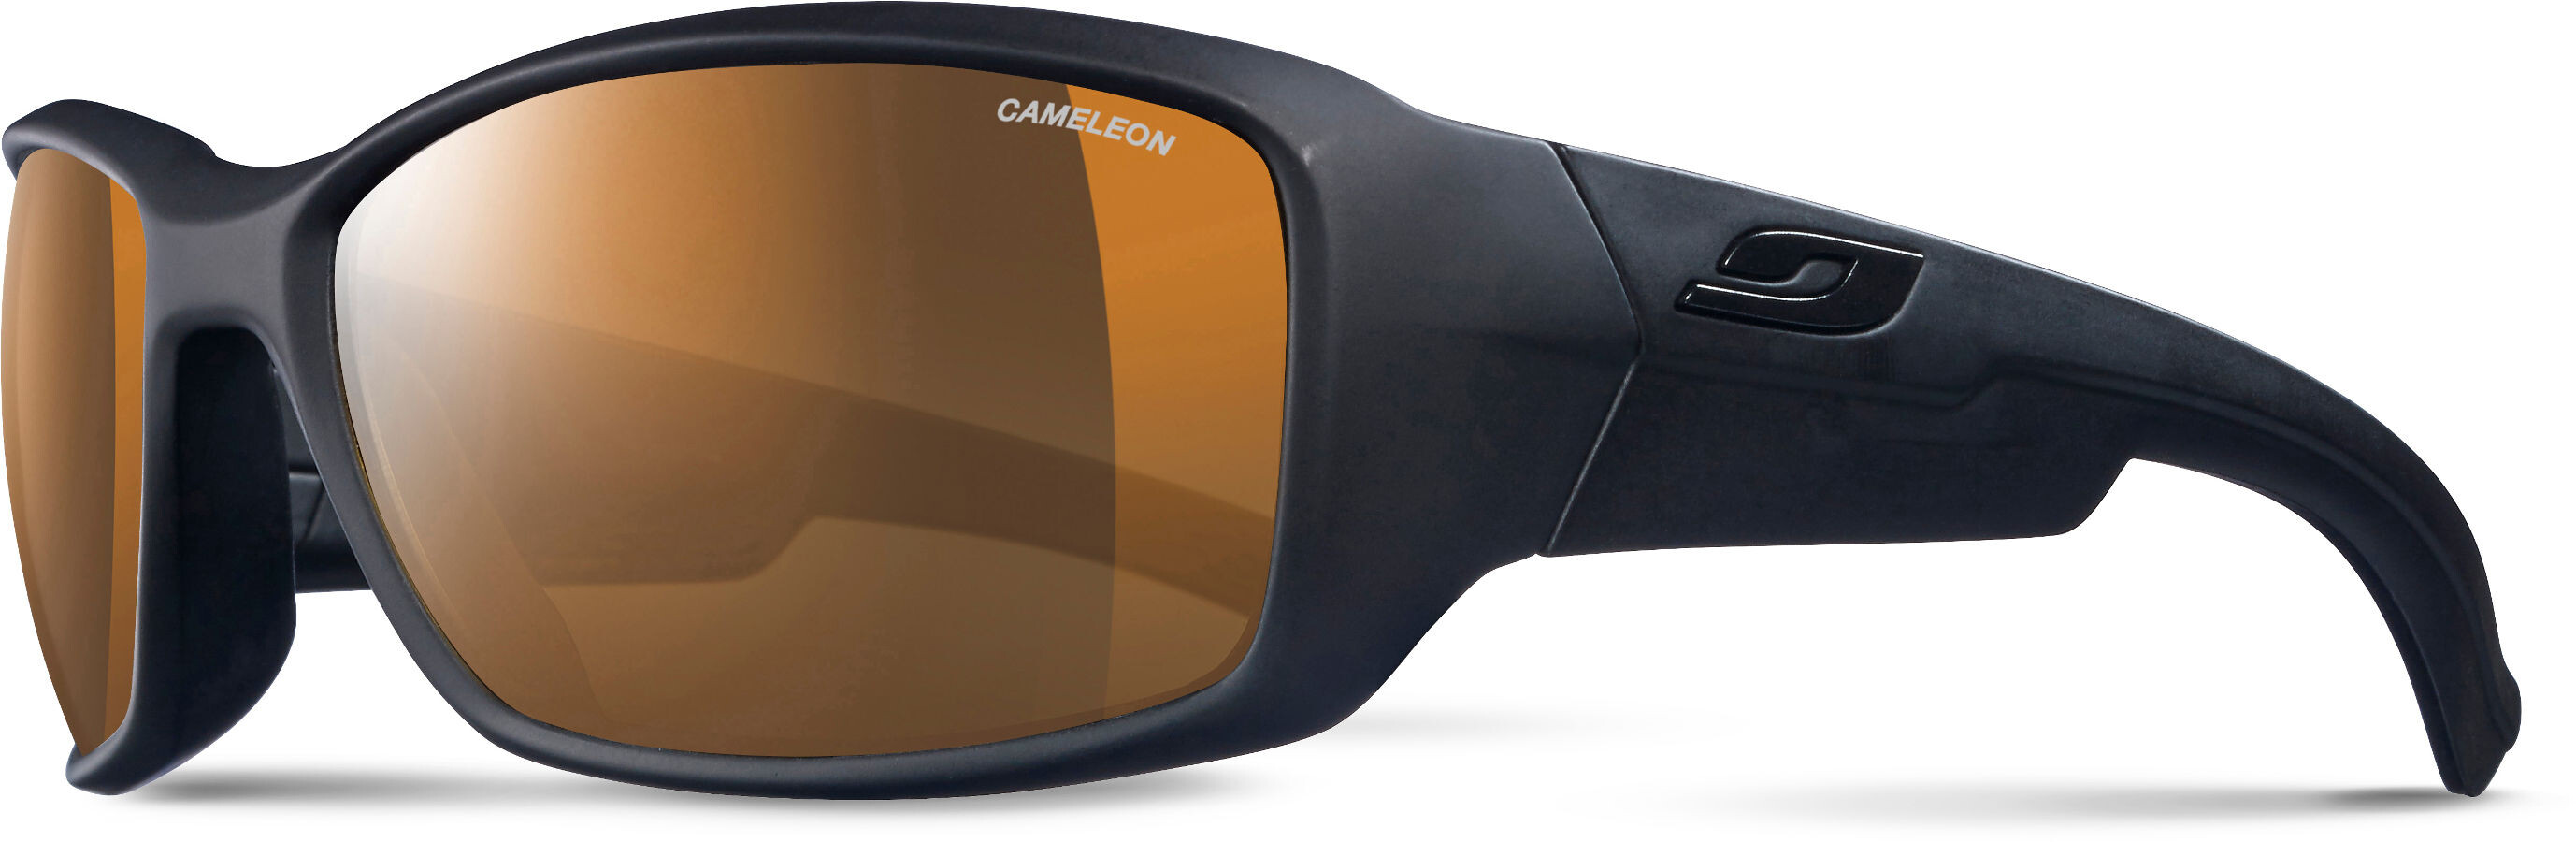 18b2c9956f0 Julbo Whoops Cameleon Glasses brown black at Bikester.co.uk